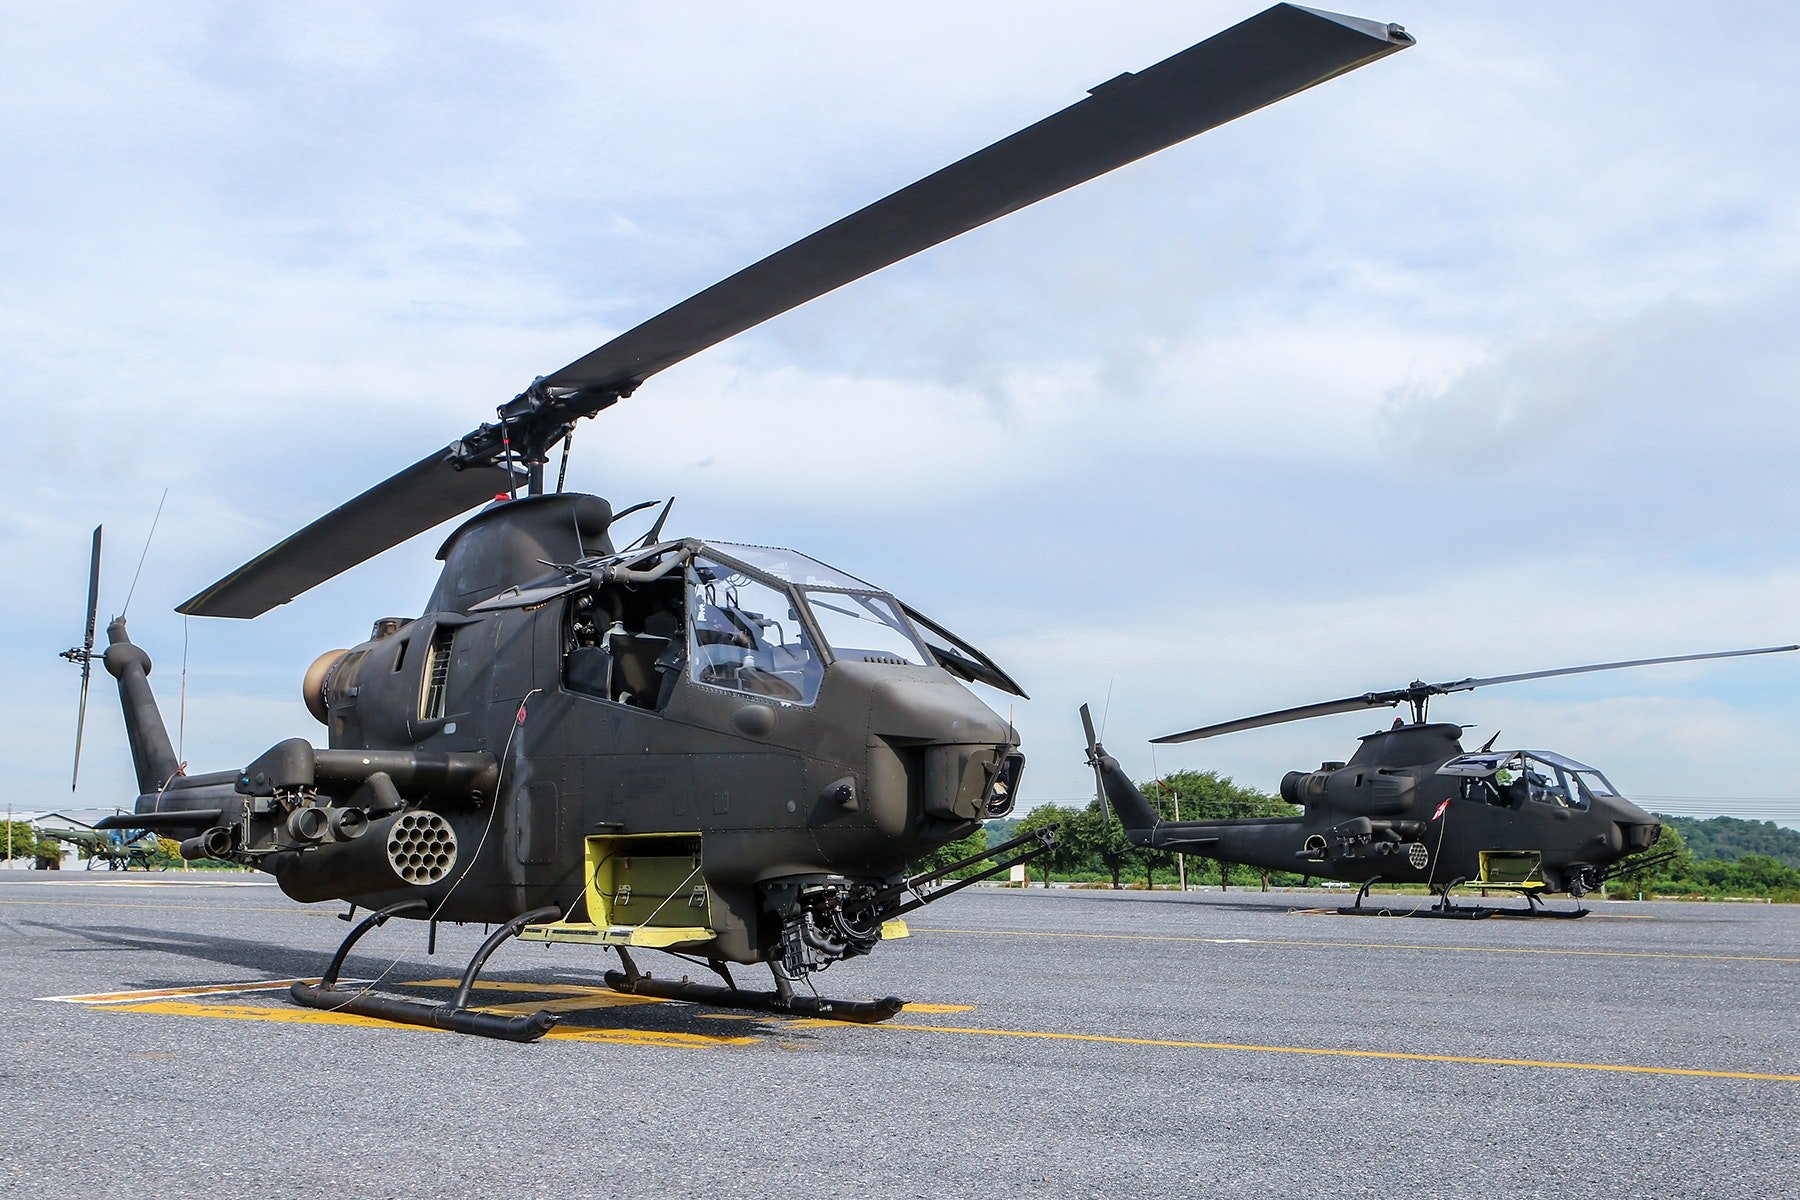 Black Helicopter, Air, Aircraft, Airplane, Airport, HQ Photo